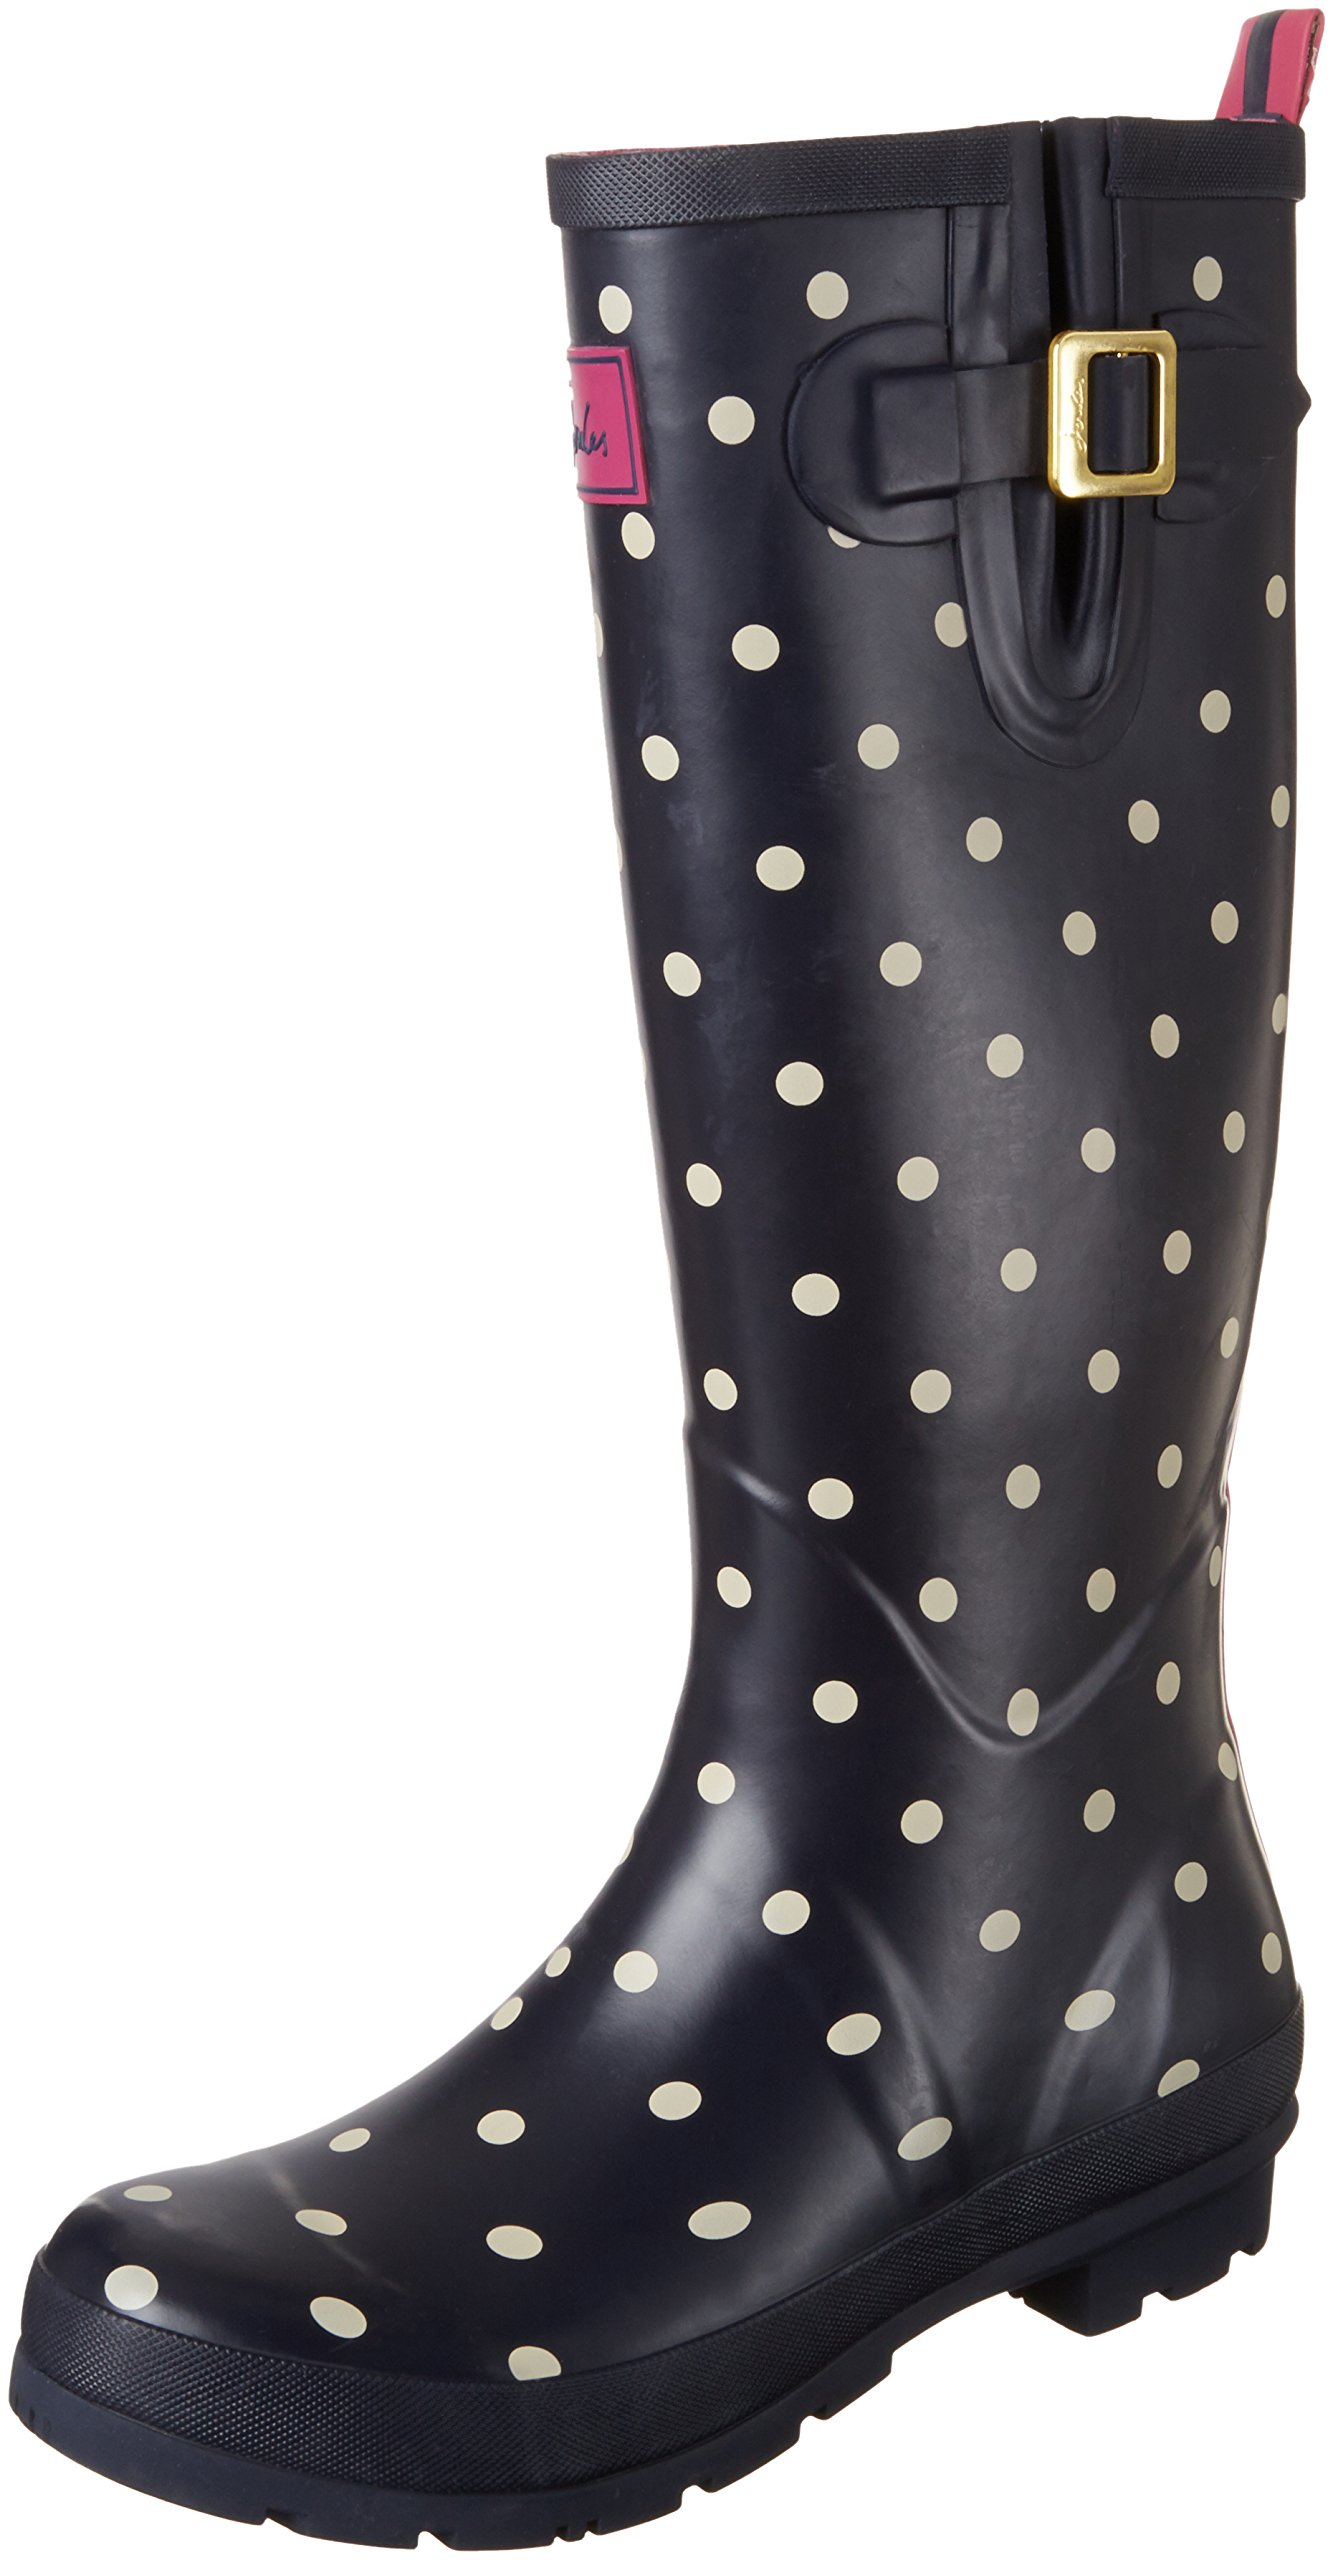 Joules Women's Welly Print Rain Boot, Navy Spot White, 9 M US